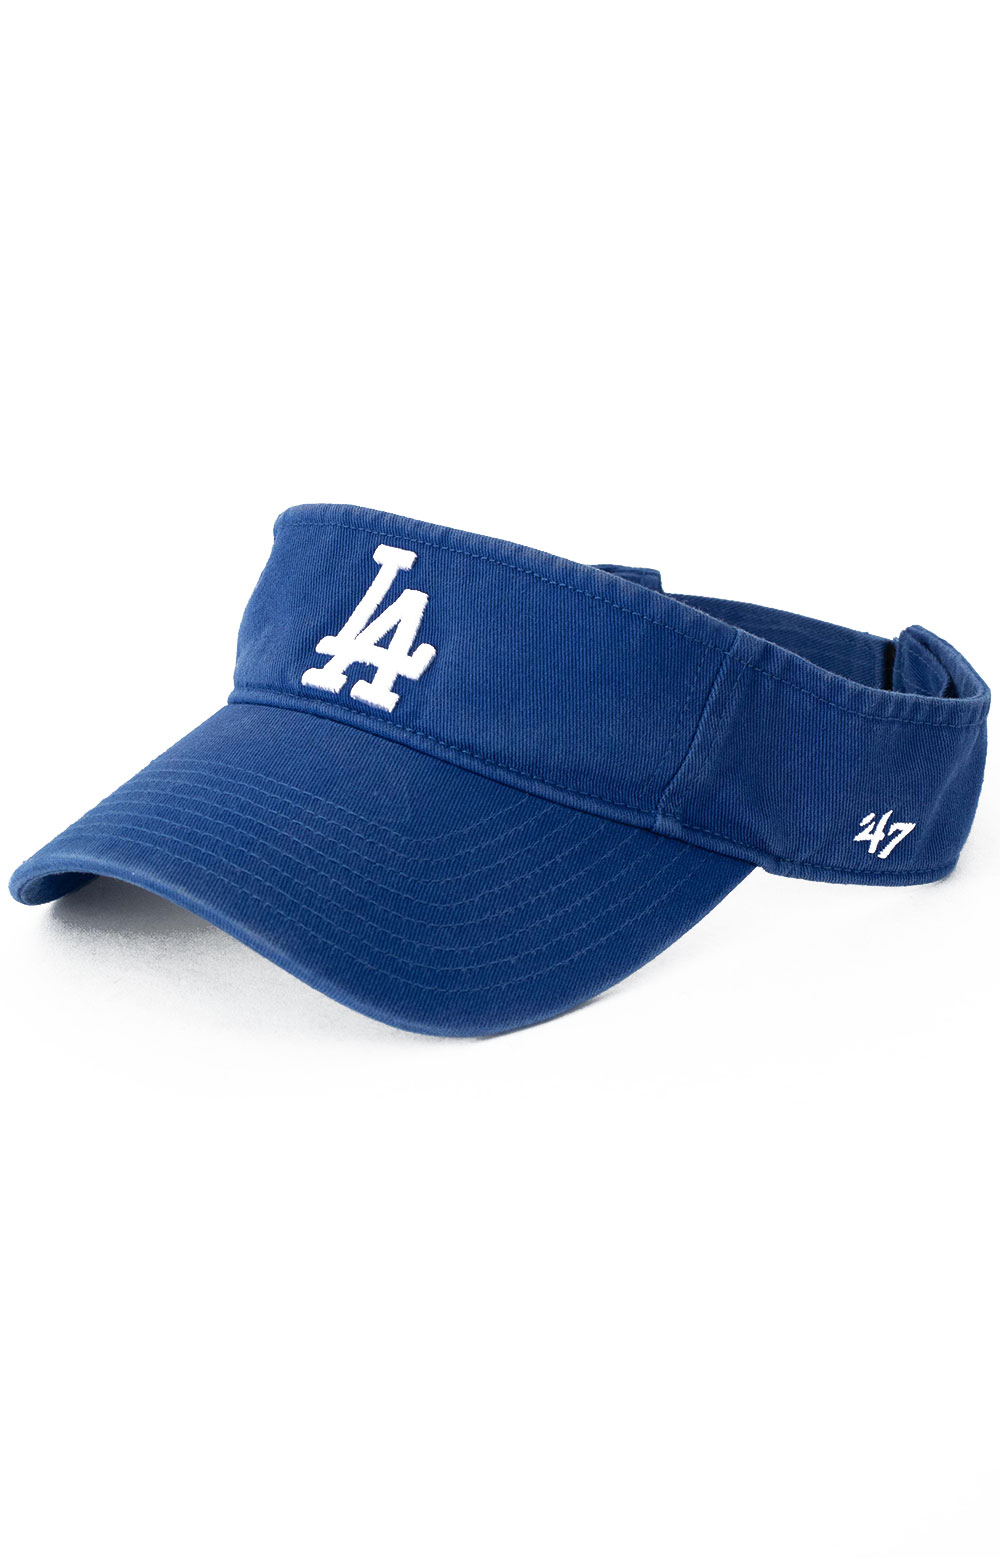 LA Dodgers 47 Clean Up Visor - Royal Blue